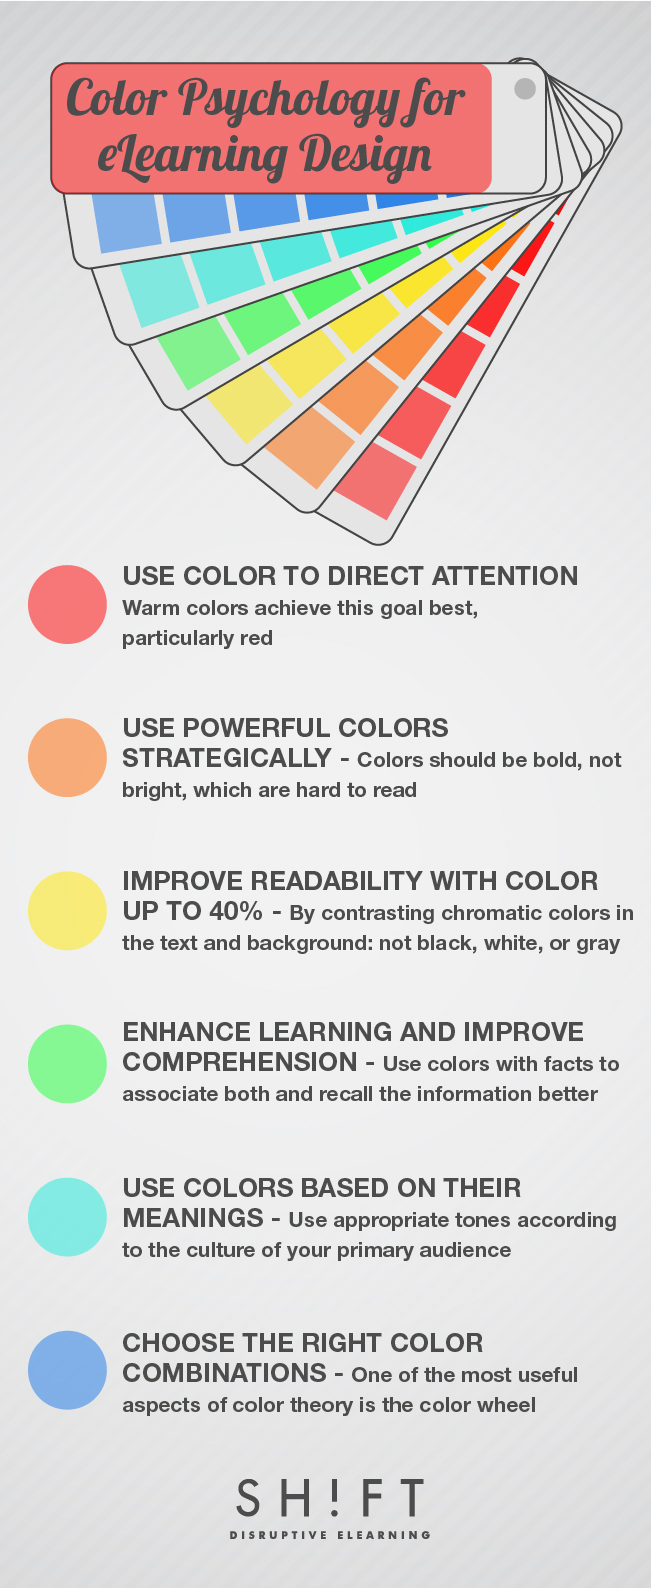 color psychology for eLearning design